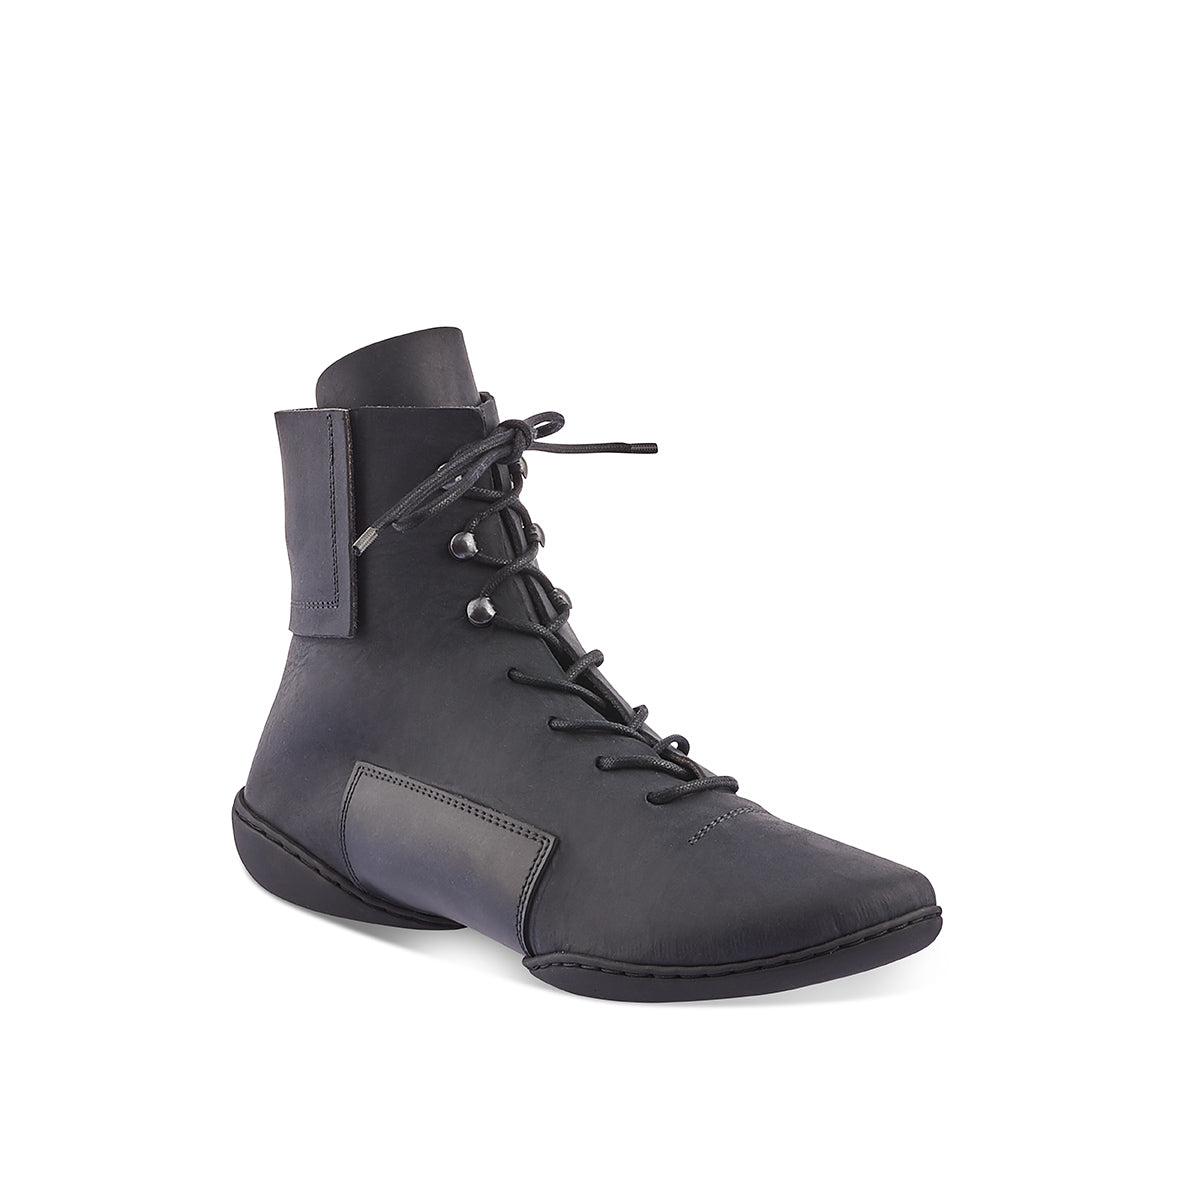 With a dark and moody oiled leather upper, Mind is a sporty ankle boot with sleek lines and rectangular panels at the heel and under the mid section. The 'cups' sole provides a supportive barefoot feel while the stitching between the two sole parts is covered with a stitched rubber piece, making it wet-weather resistant underfoot.